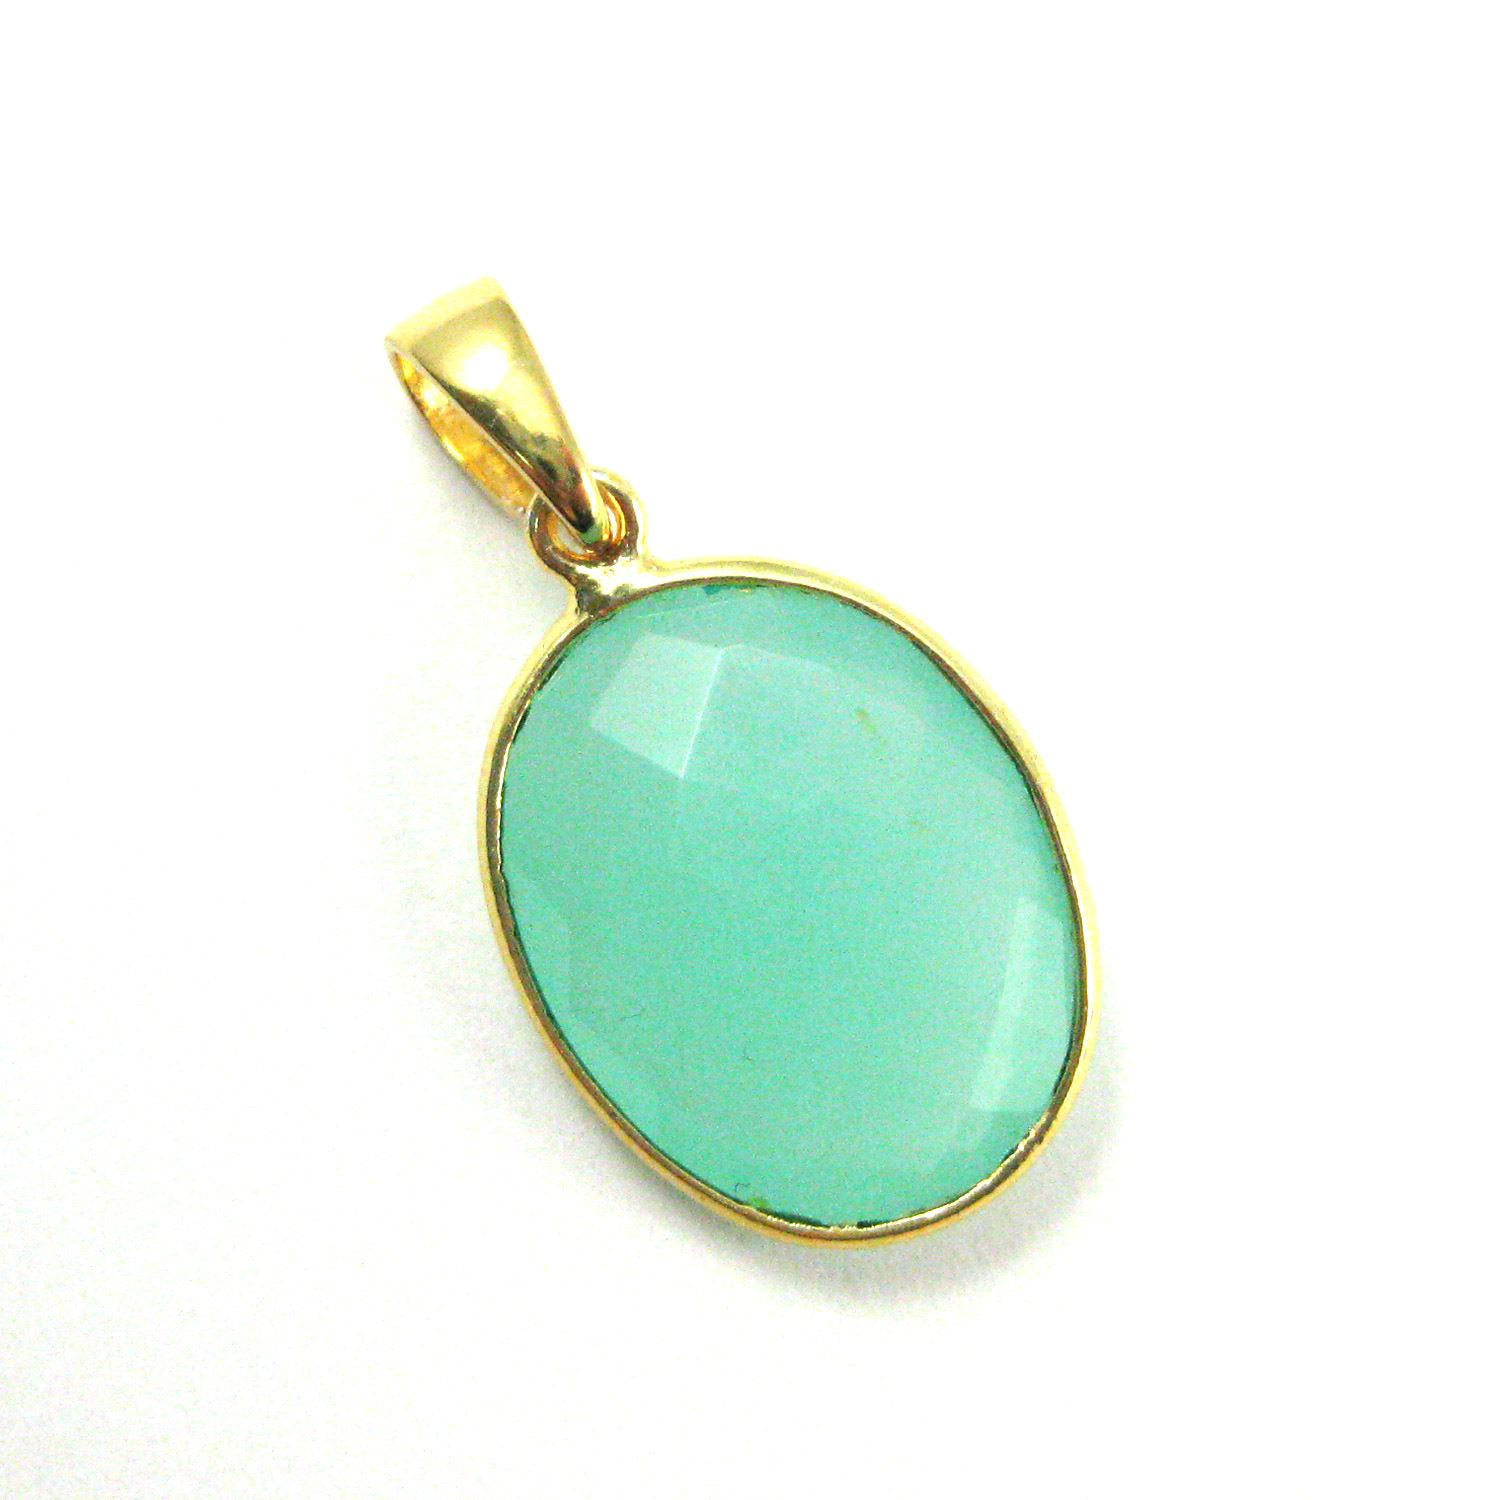 Bezel Gemstone Pendant with Bail - Gold plated Sterling Silver Oval Gem Pendant - Ready for Necklace - 28mm - Peru Chalcedony